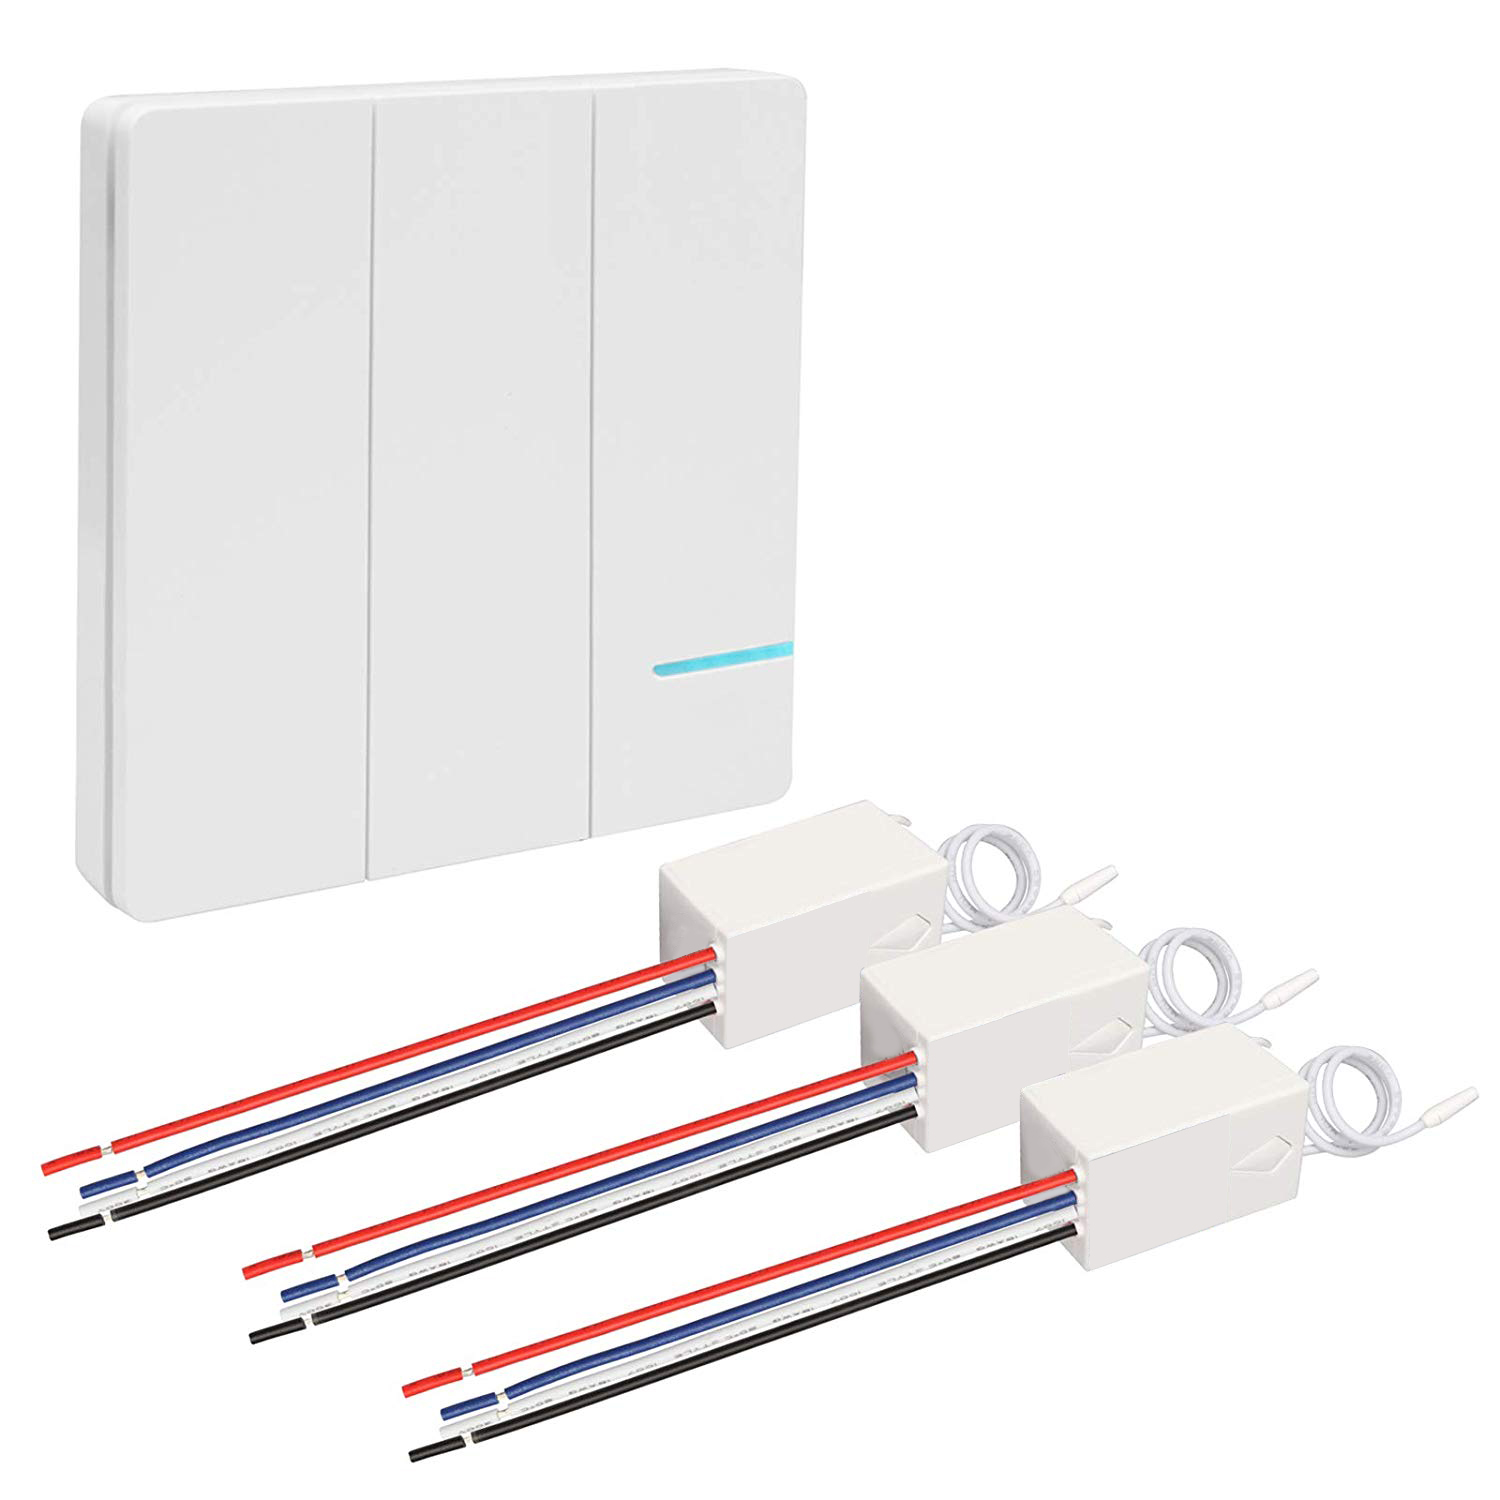 3 Way Remote Wireless Light Switch Receiver Kit Waterproof,easy Installation,no Wiring,on/off Control Multiple Lights